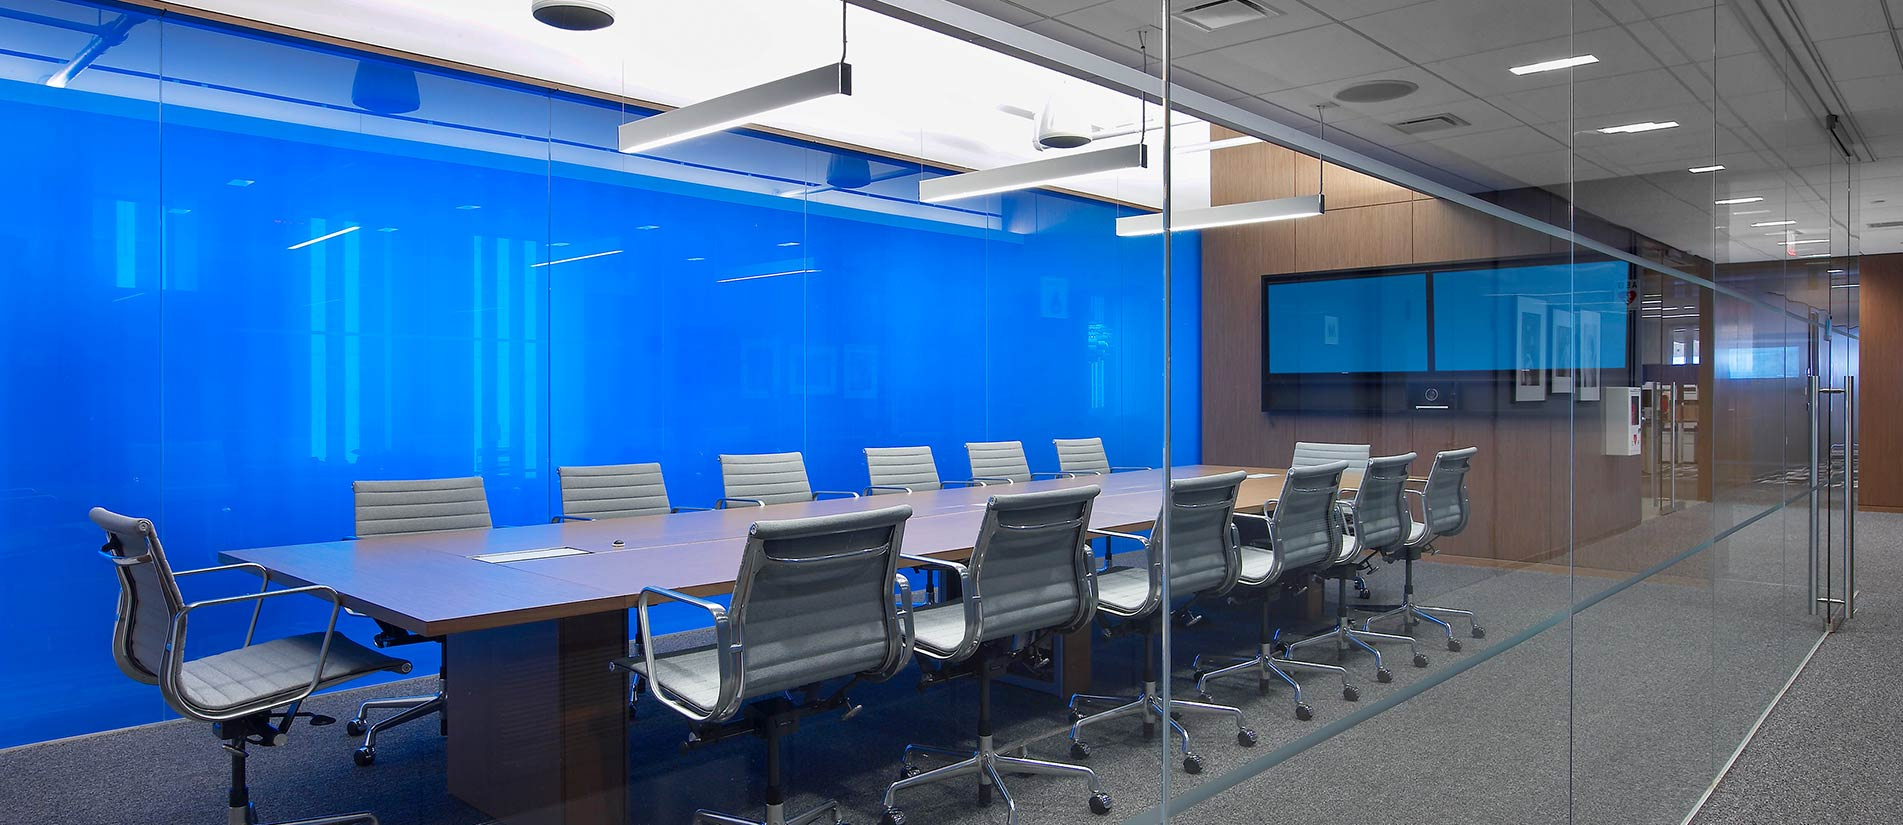 ags-transwall-glass-wall-office-partitions-doors-2